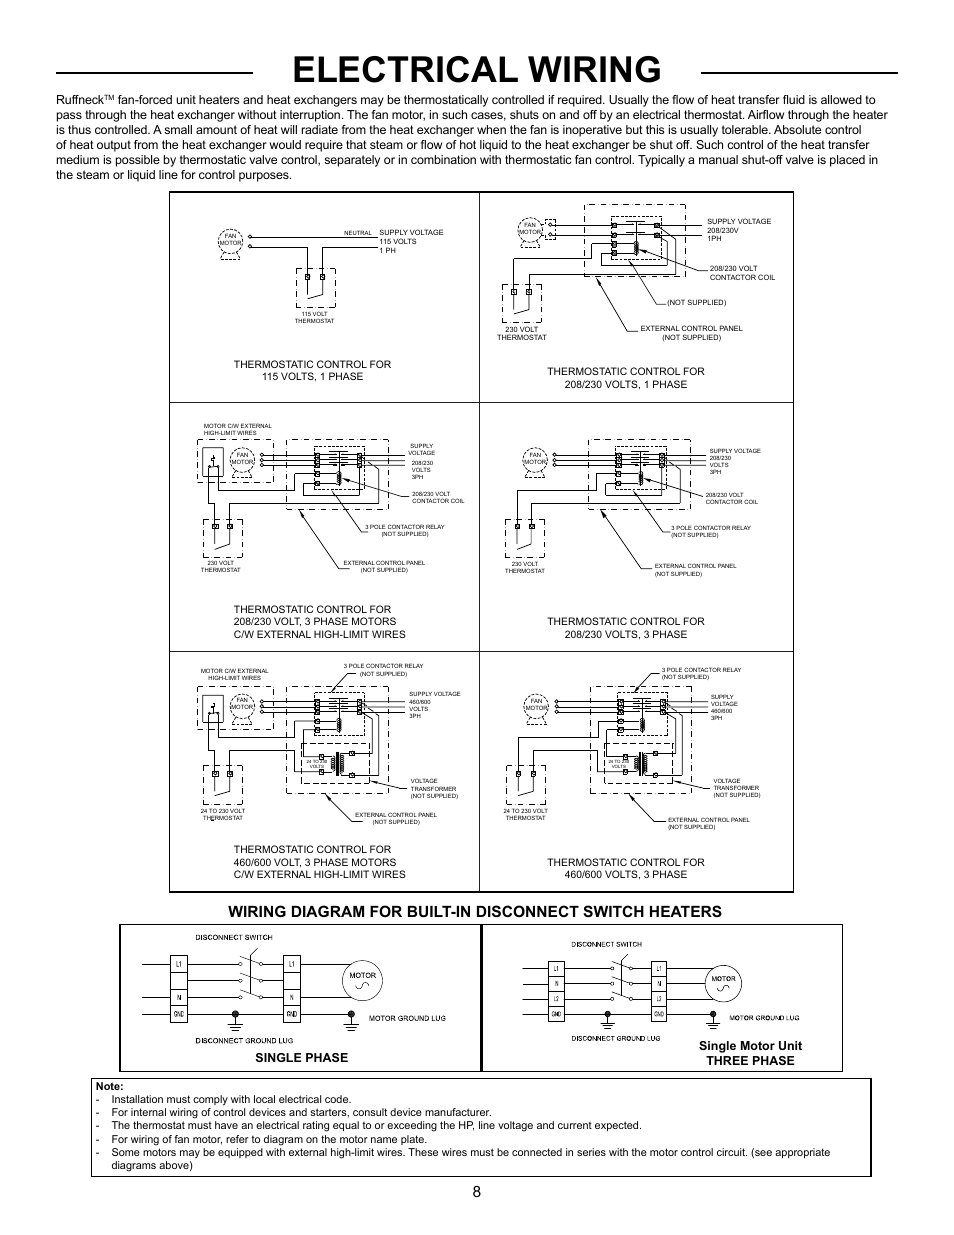 Unit Diagram Gas Wiring Heater Modine on miller bobcat 250 parts diagram, coleman furnace wiring diagram, modine pd 250a wiring-diagram, furnace relay wiring diagram, modine gas valve, modine heater manuals, reznor gas heater wiring diagram, rheem furnace troubleshooting diagram, ge fan motor wiring diagram, modine wiring diagram pdf, modine fan wiring diagram, modine pa 250a wiring-diagram, modine radiator cross reference, modine gas unit heaters, modine heaters wiring diagram for pd, tankless water heater installation diagram, gas furnace diagram, riordan manufacturing systems diagram, heil furnace wiring diagram, thermostat wiring diagram,